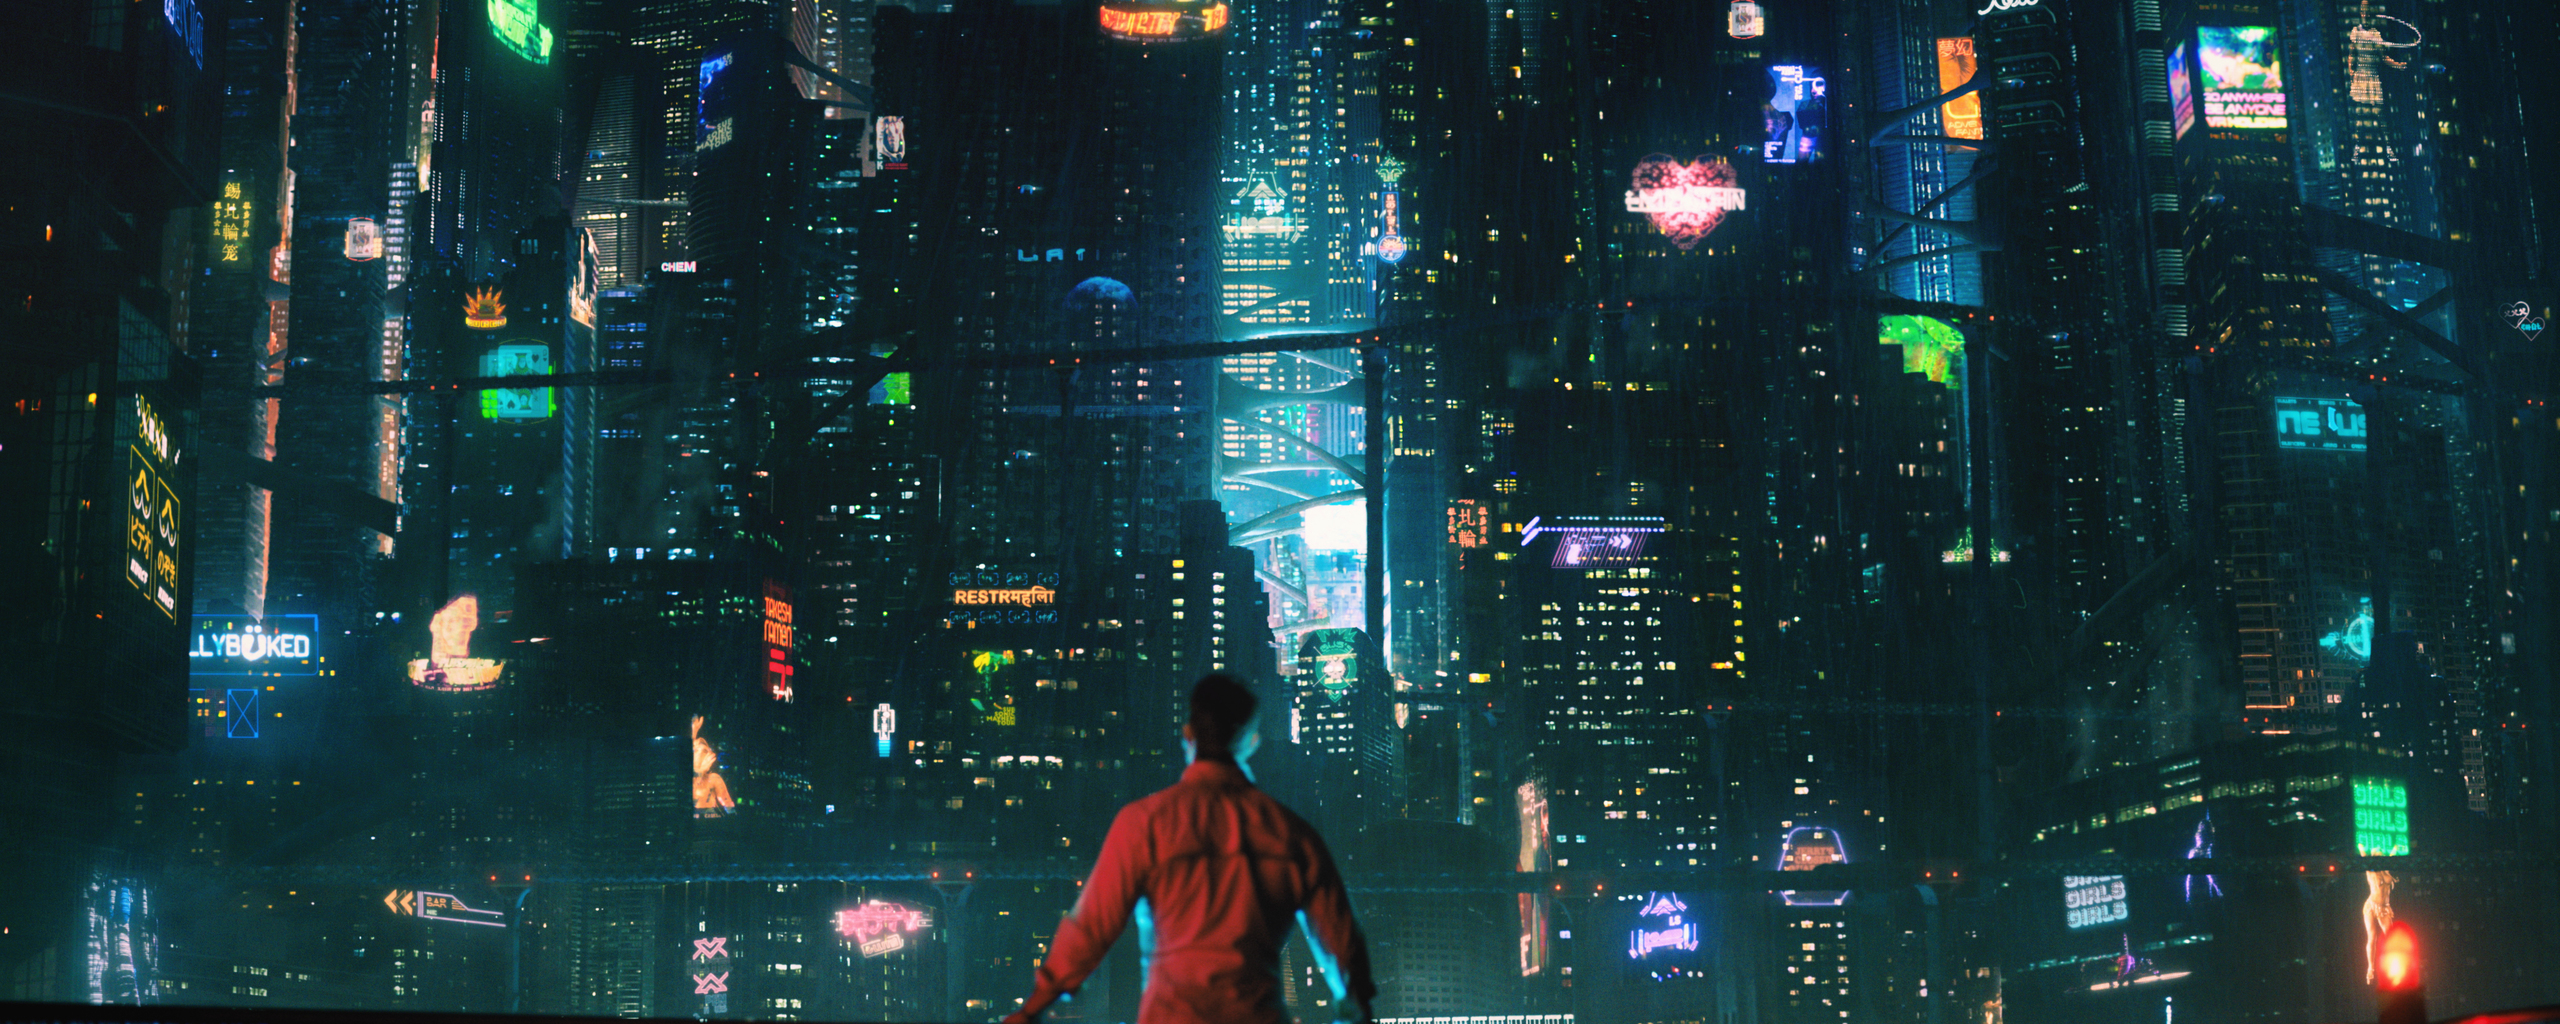 altered-carbon-netflix-tv-series-2018-5c.jpg